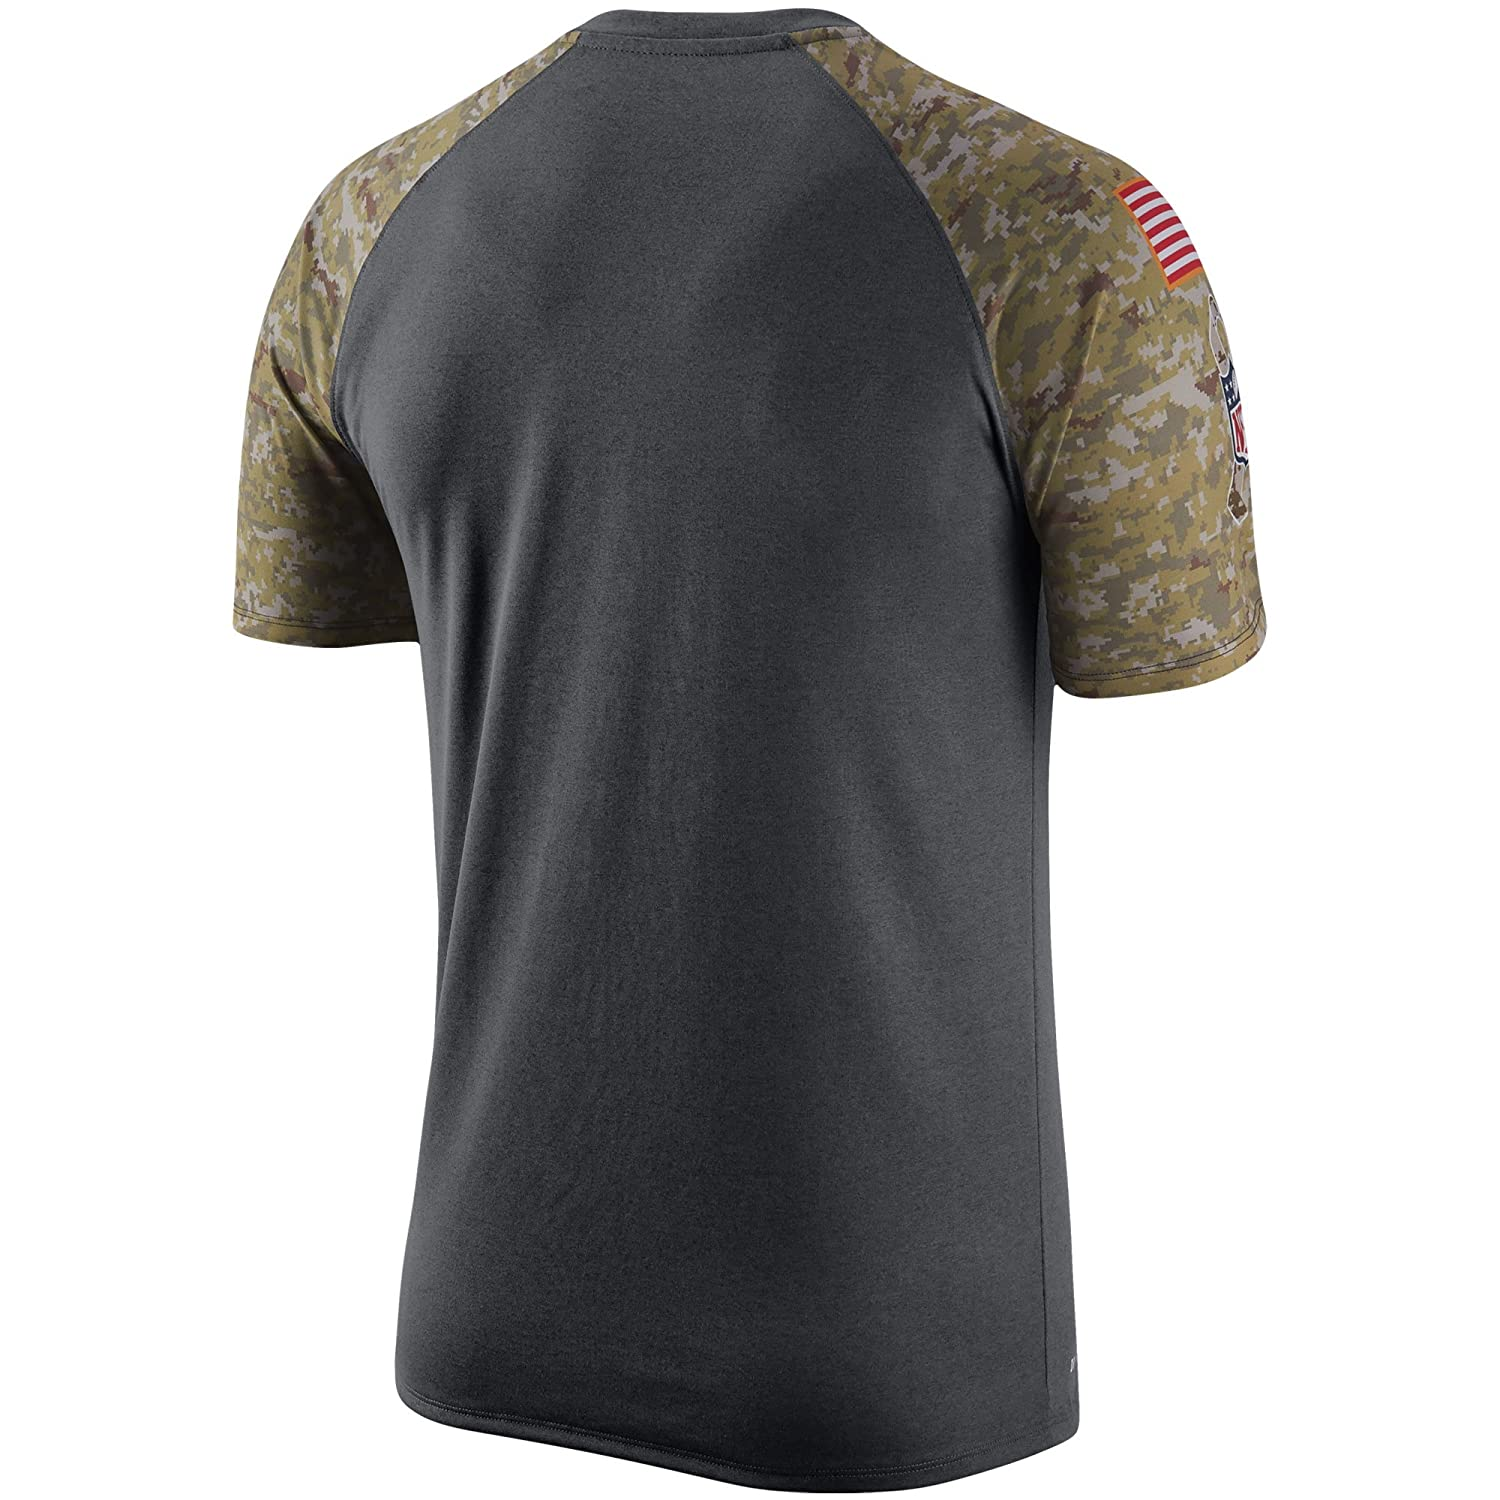 c21493cb6 Amazon.com   Nike Green Bay Packers Salute To Service Raglan Performance  Anthracite Camo Shirt - Men s Large   Sports   Outdoors